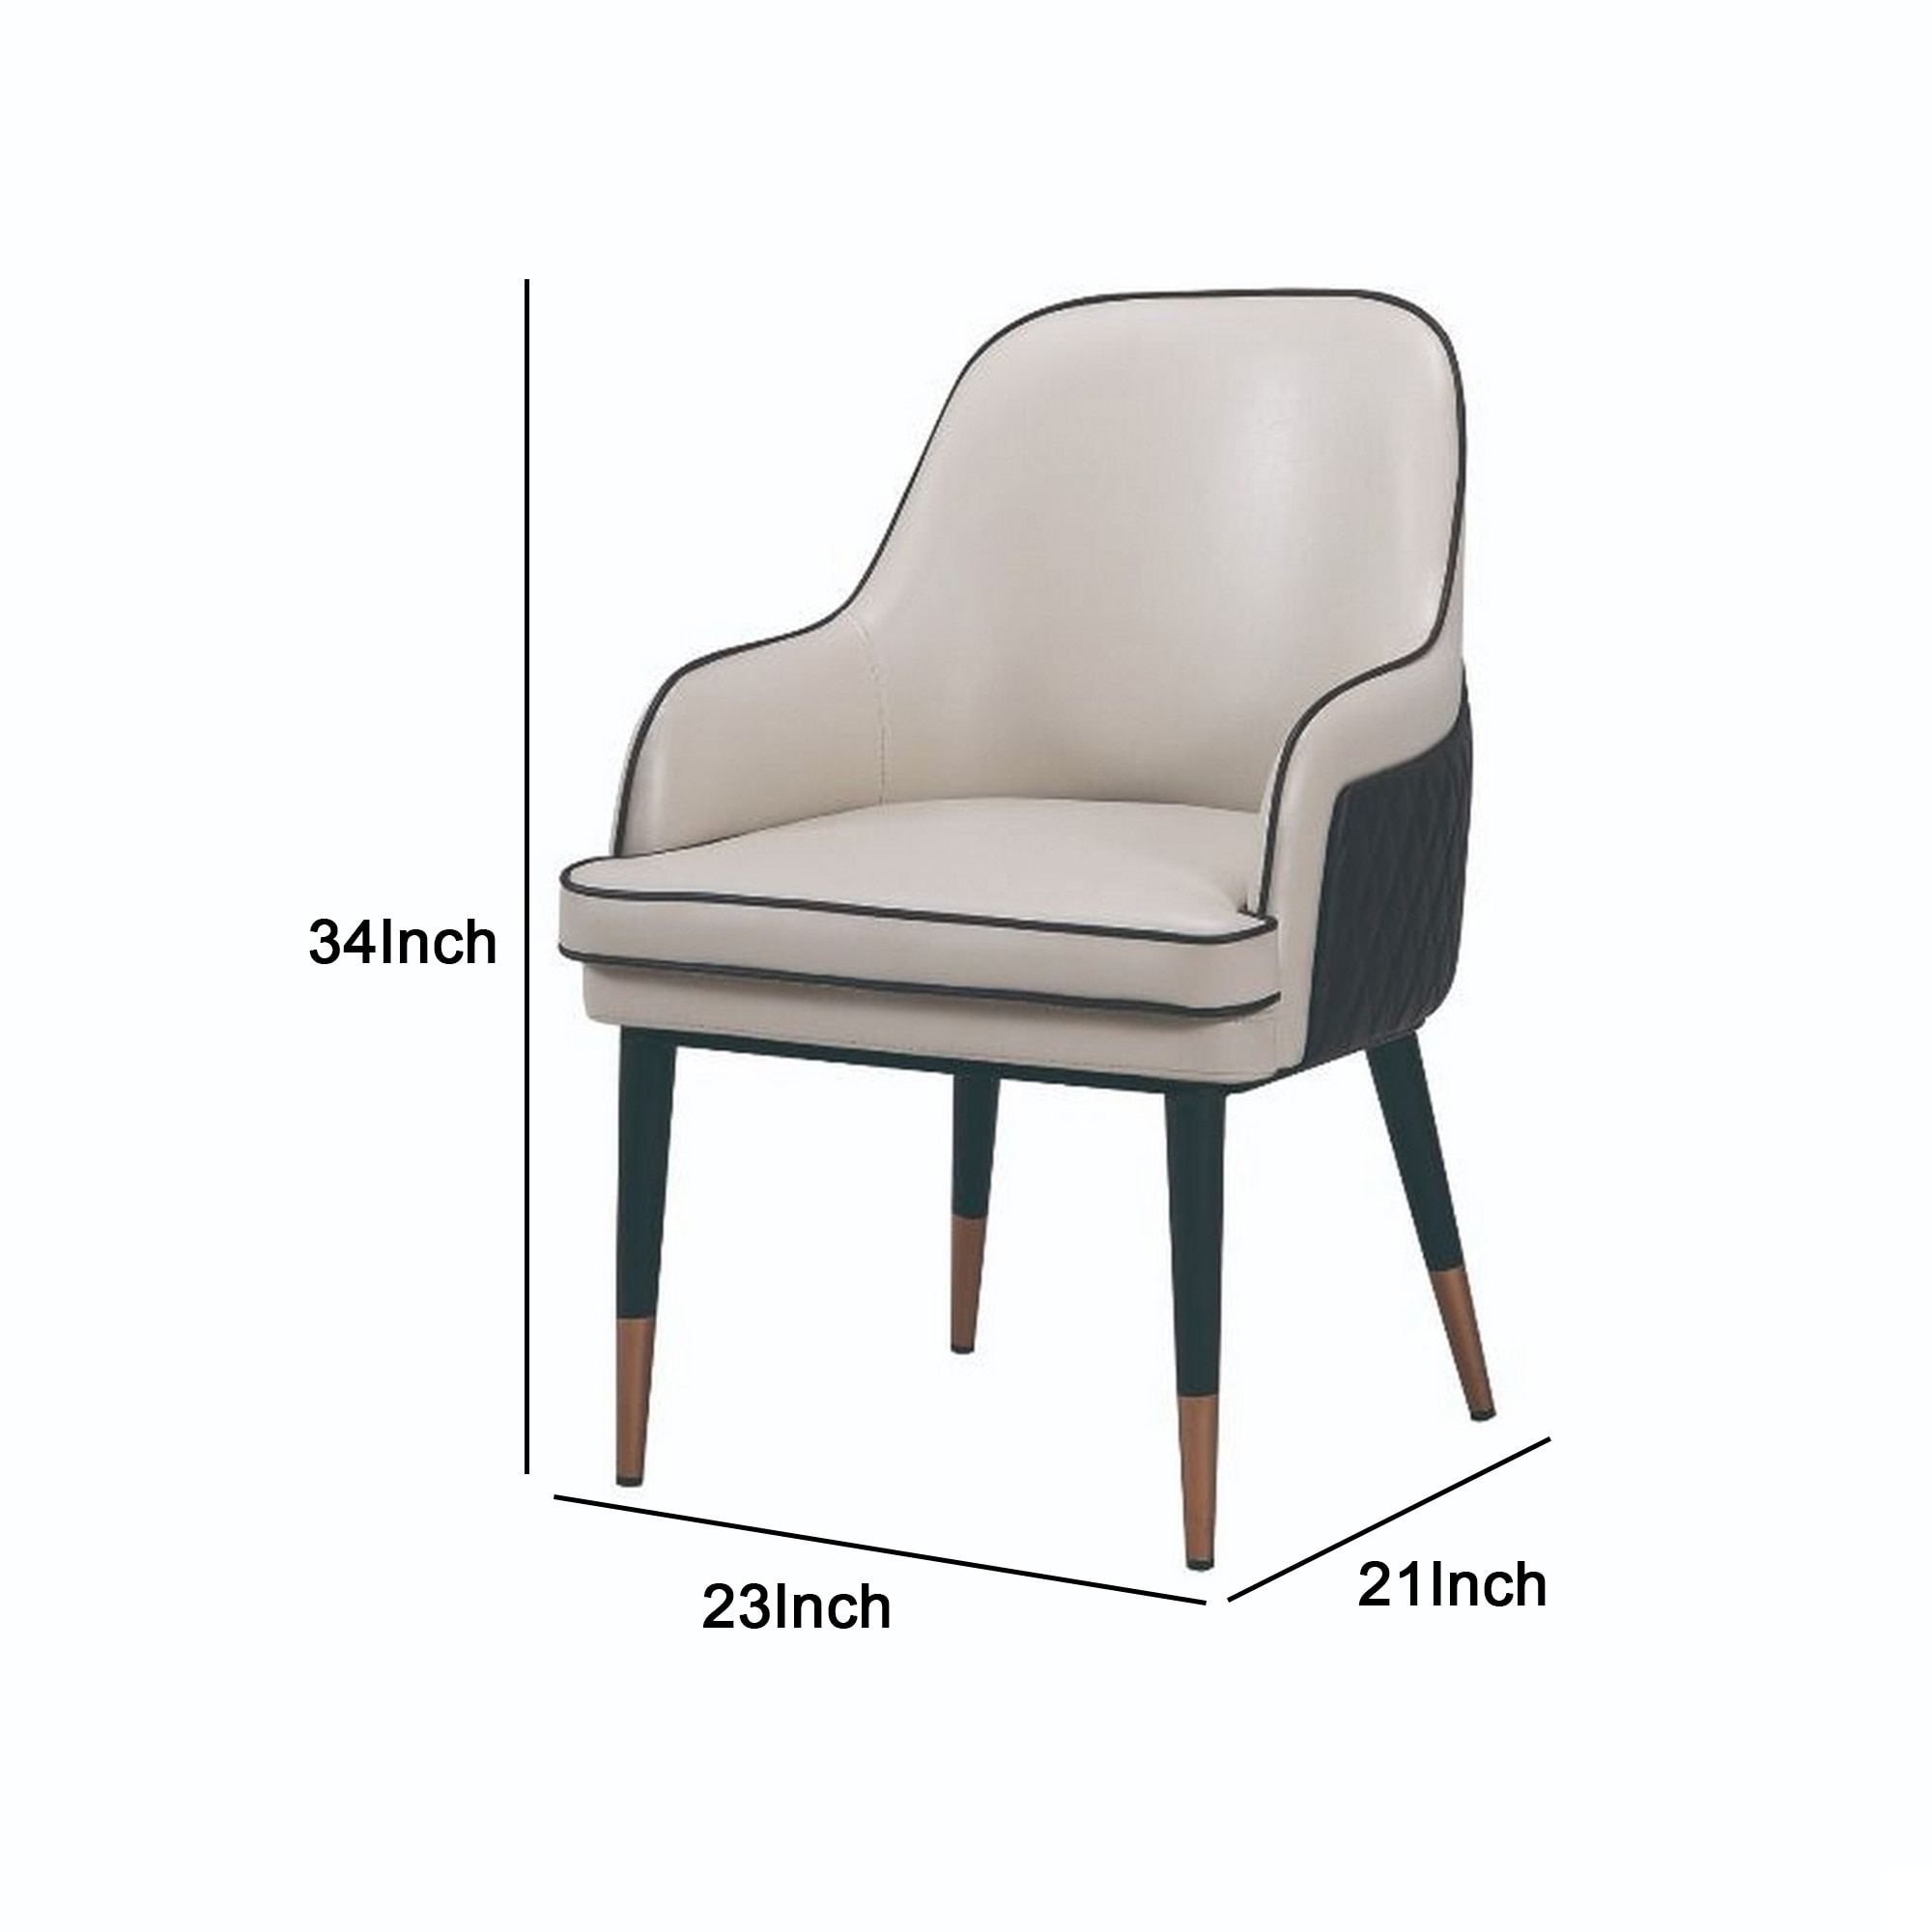 Mid Century Leatherette Armchair With Peg Legs And Metal Cap Gray And Brown On Sale Overstock 31857630